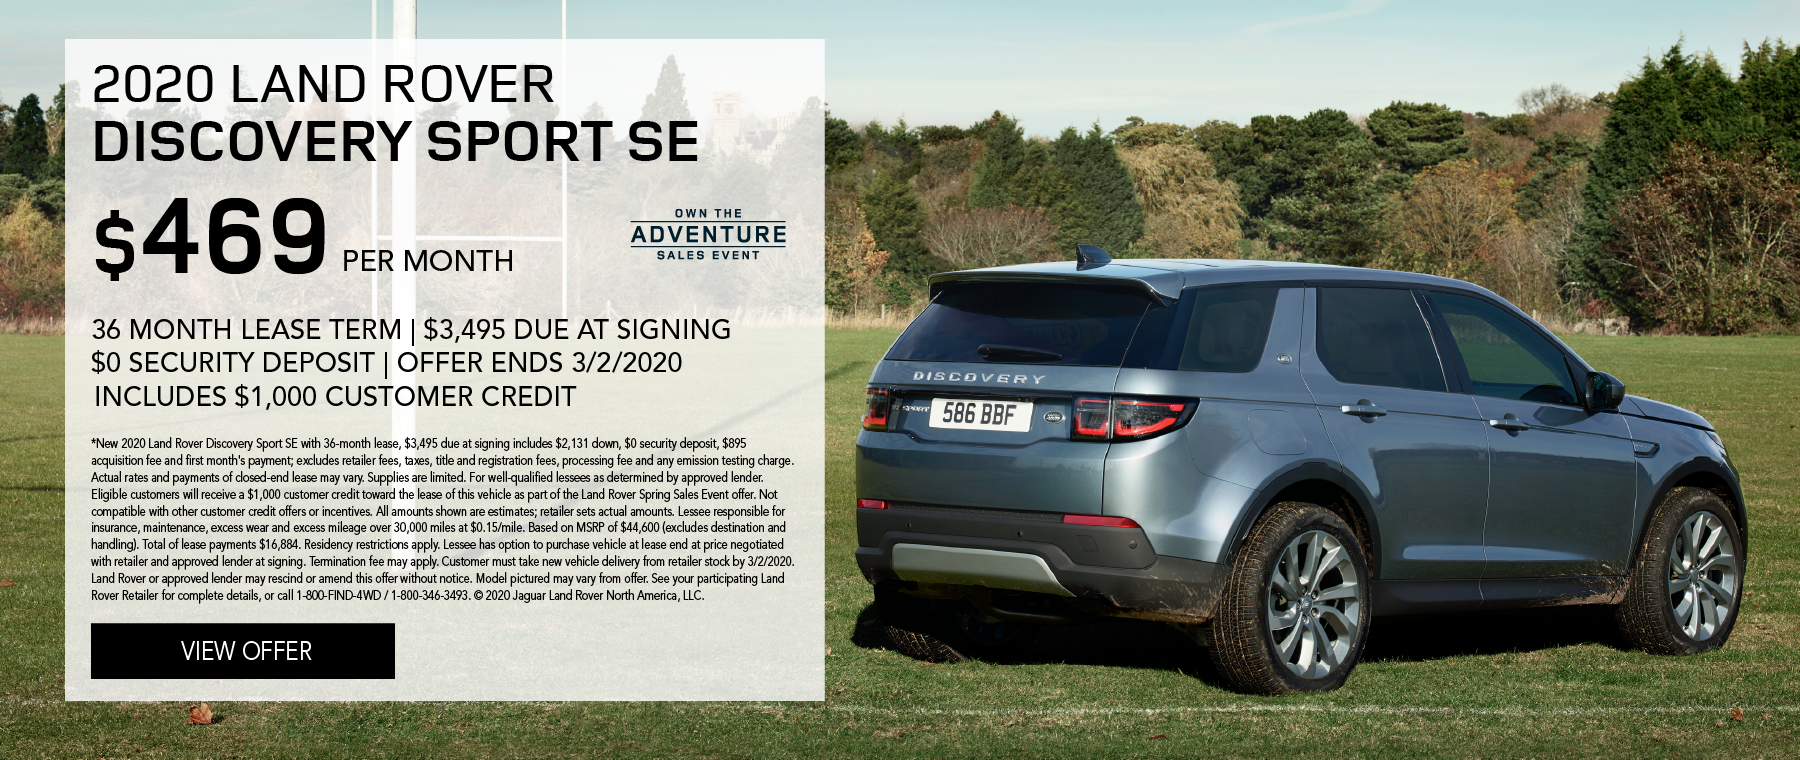 2020 LAND ROVER DISCOVERY SPORT SE PARKED IN GRASSY FOOTBALL FIELD WITH TREES IN BACKGROUND. $469 PER MONTH. 36 MONTH LEASE TERM. $3,495 CASH DUE AT SIGNING. INCLUDES $1,000 CUSTOMER CREDIT. $0 SECURITY DEPOSIT. 10,000 MILES PER YEAR. OFFER ENDS 3/2/2020. OWN THE ADVENTURE SALES EVENT.